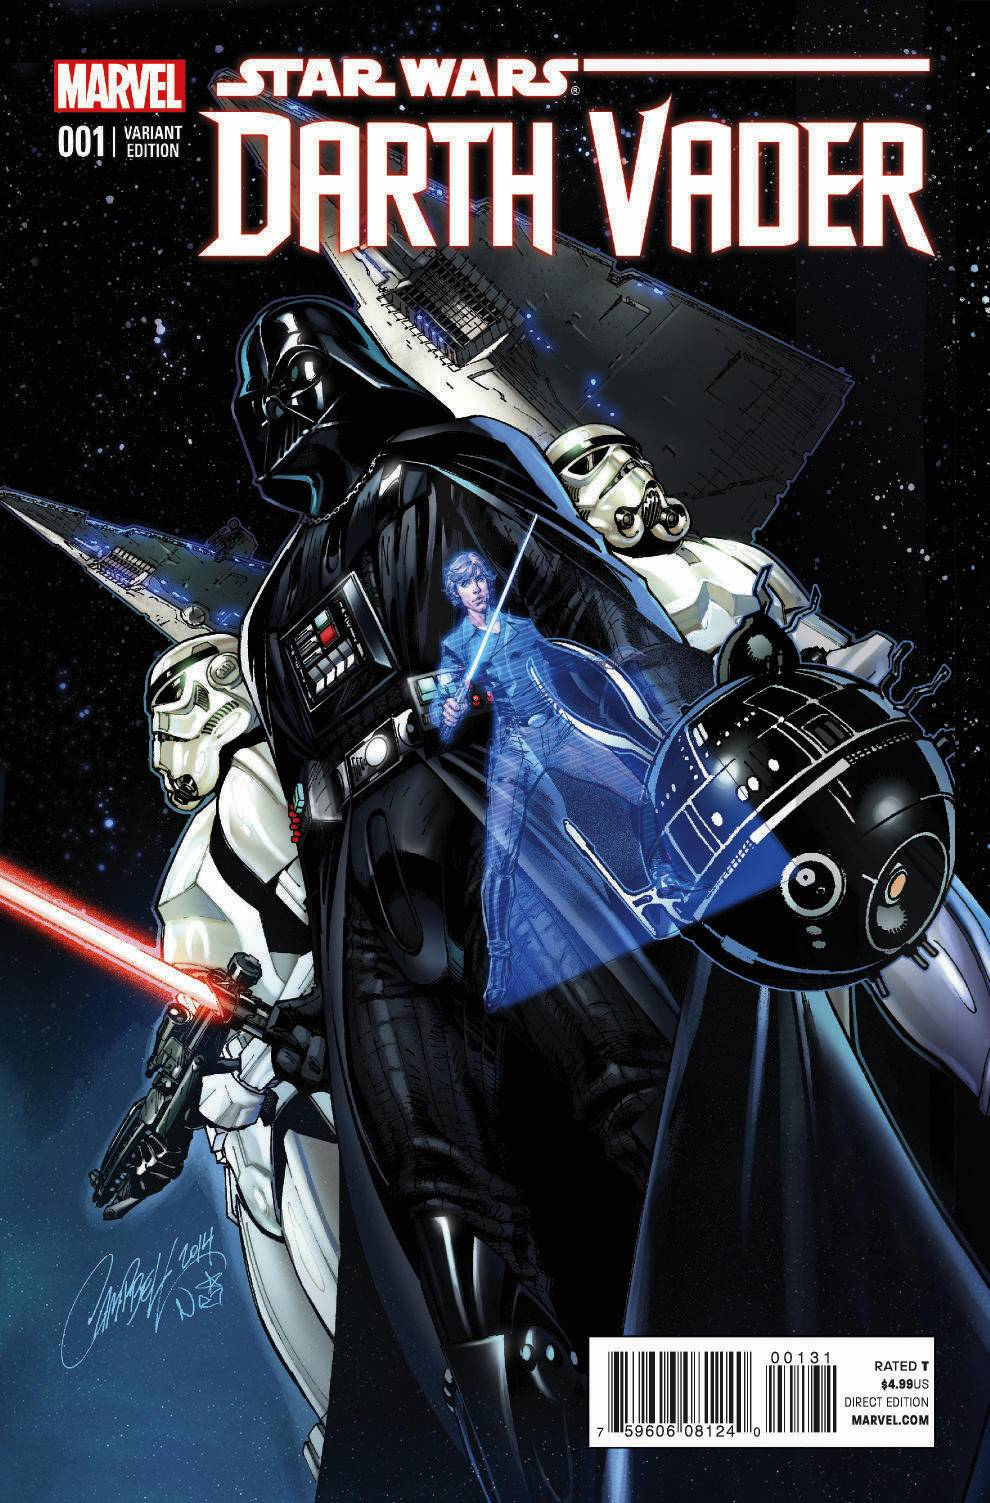 Darth Vader #1 (J. Scott Campbell Connecting Variant Cover B) (11.02.2015)